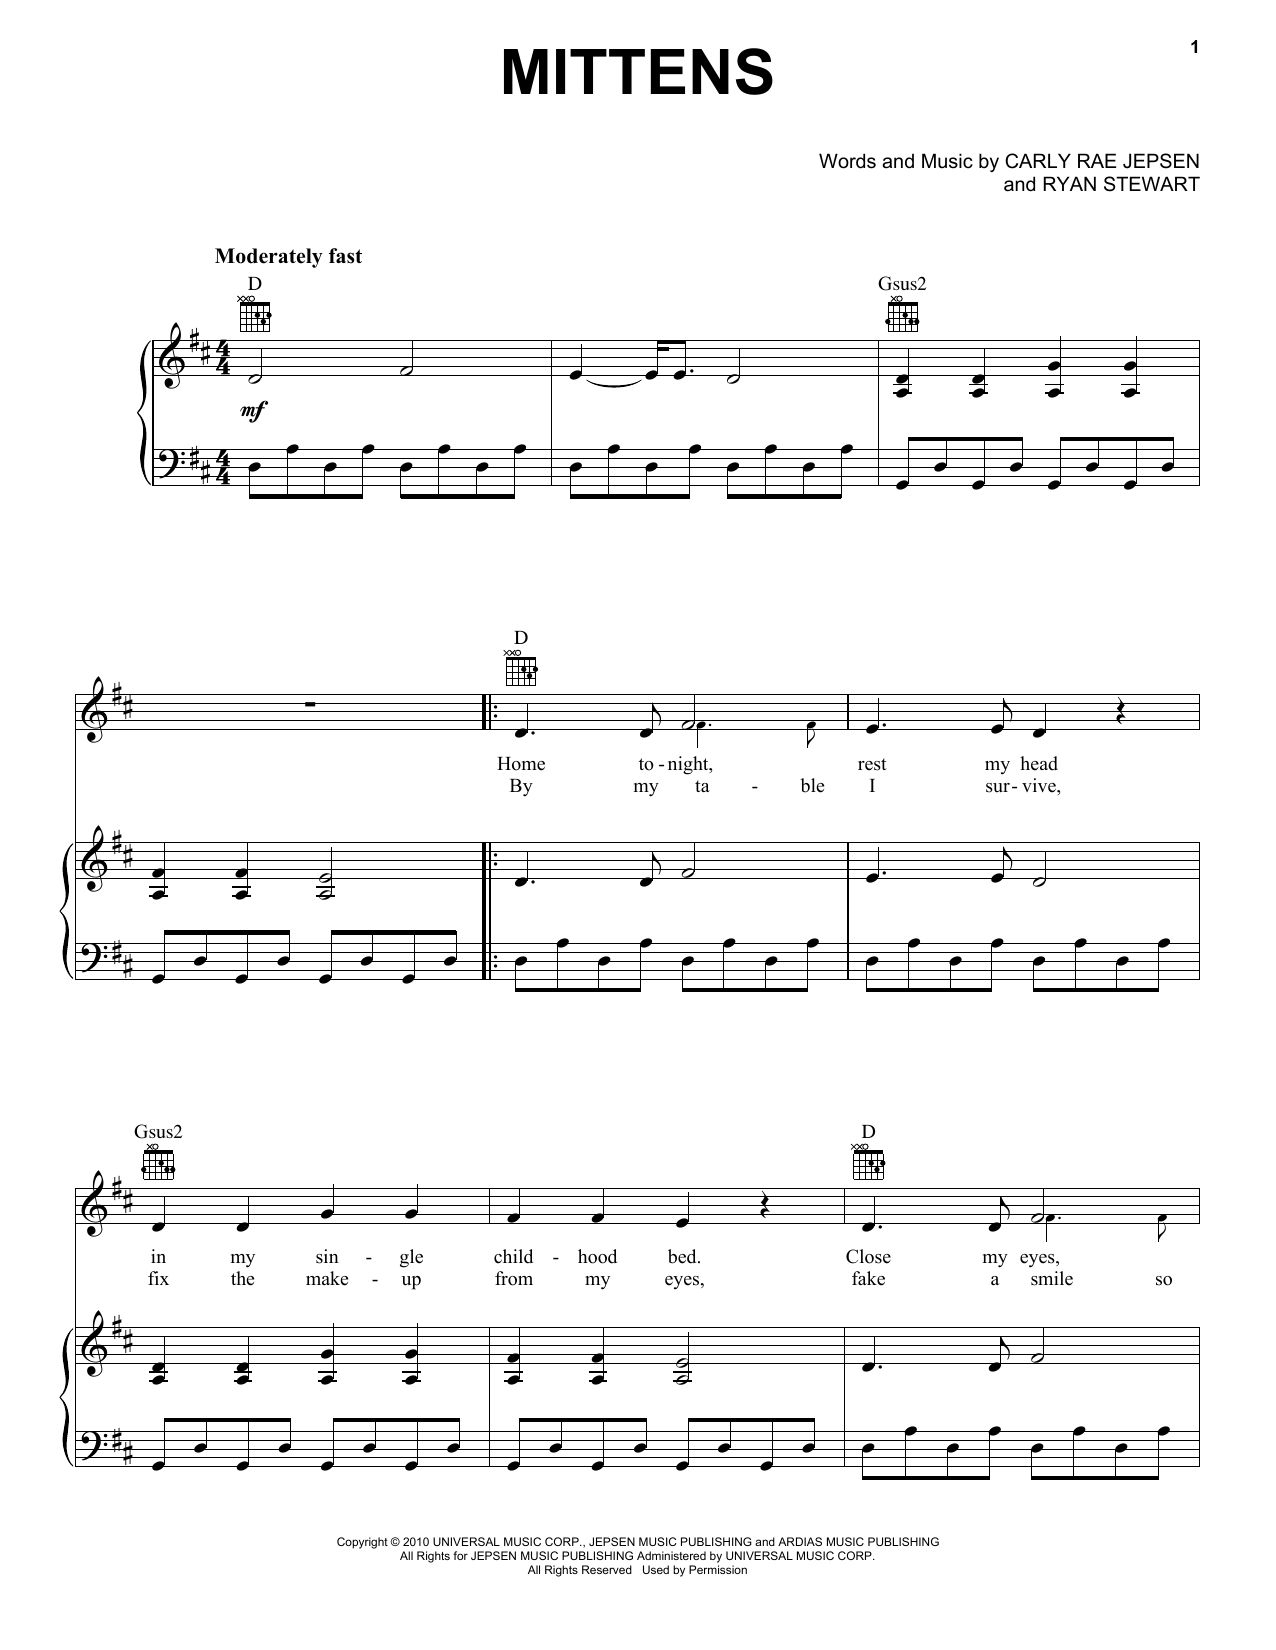 Carly Rae Jepsen Mittens sheet music notes and chords